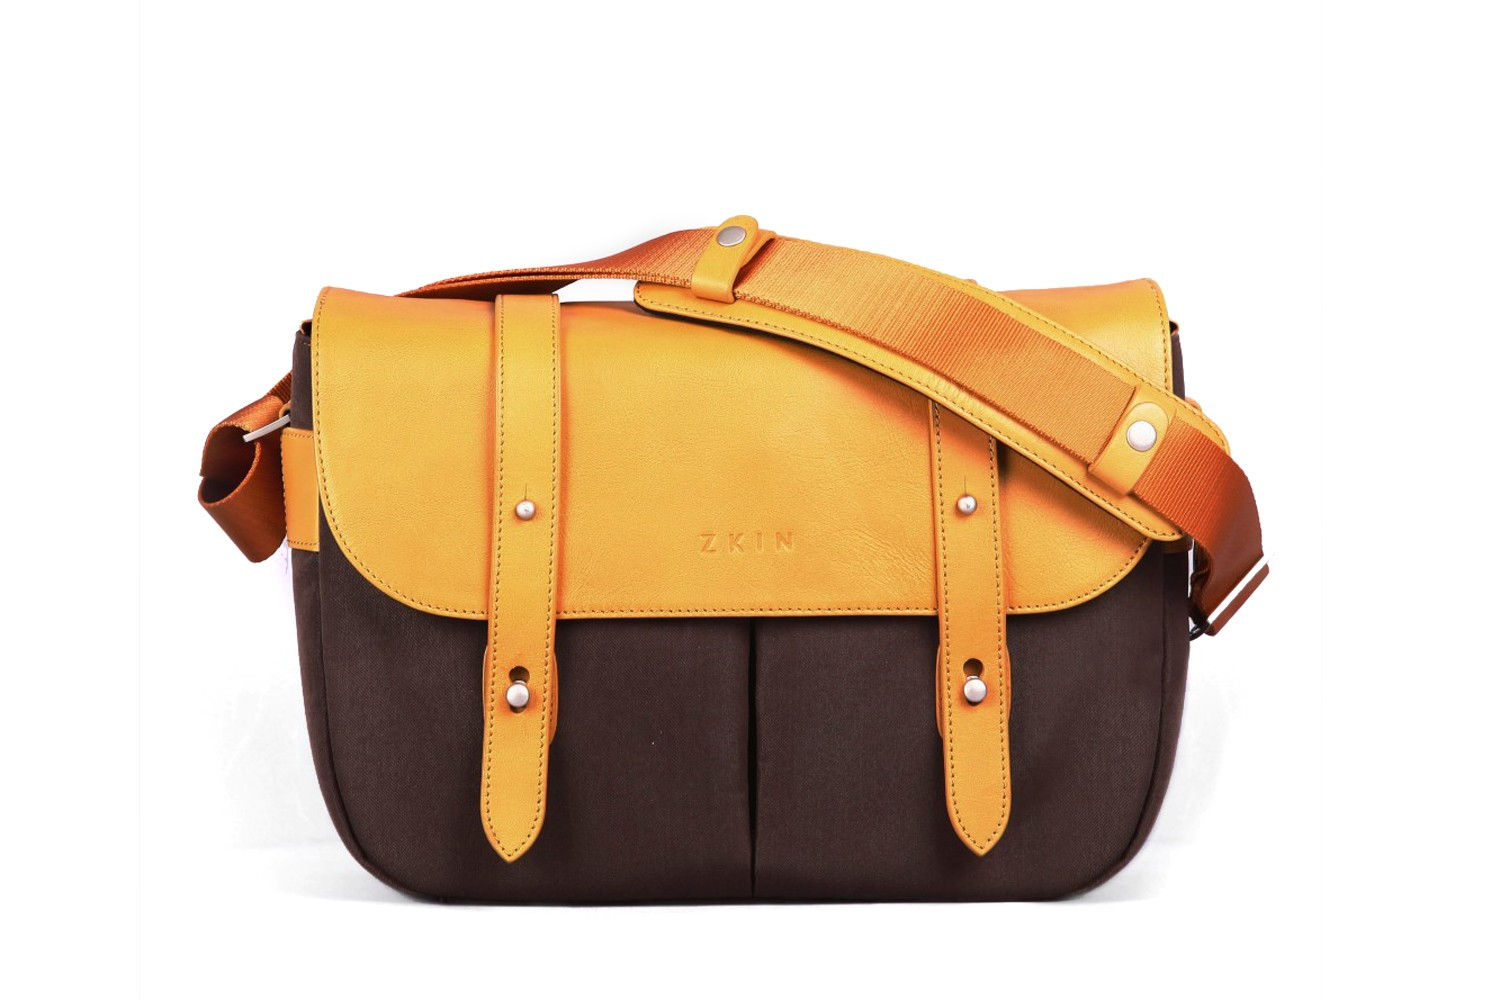 Zkin Shoulder Bag - Champ (orange brown)